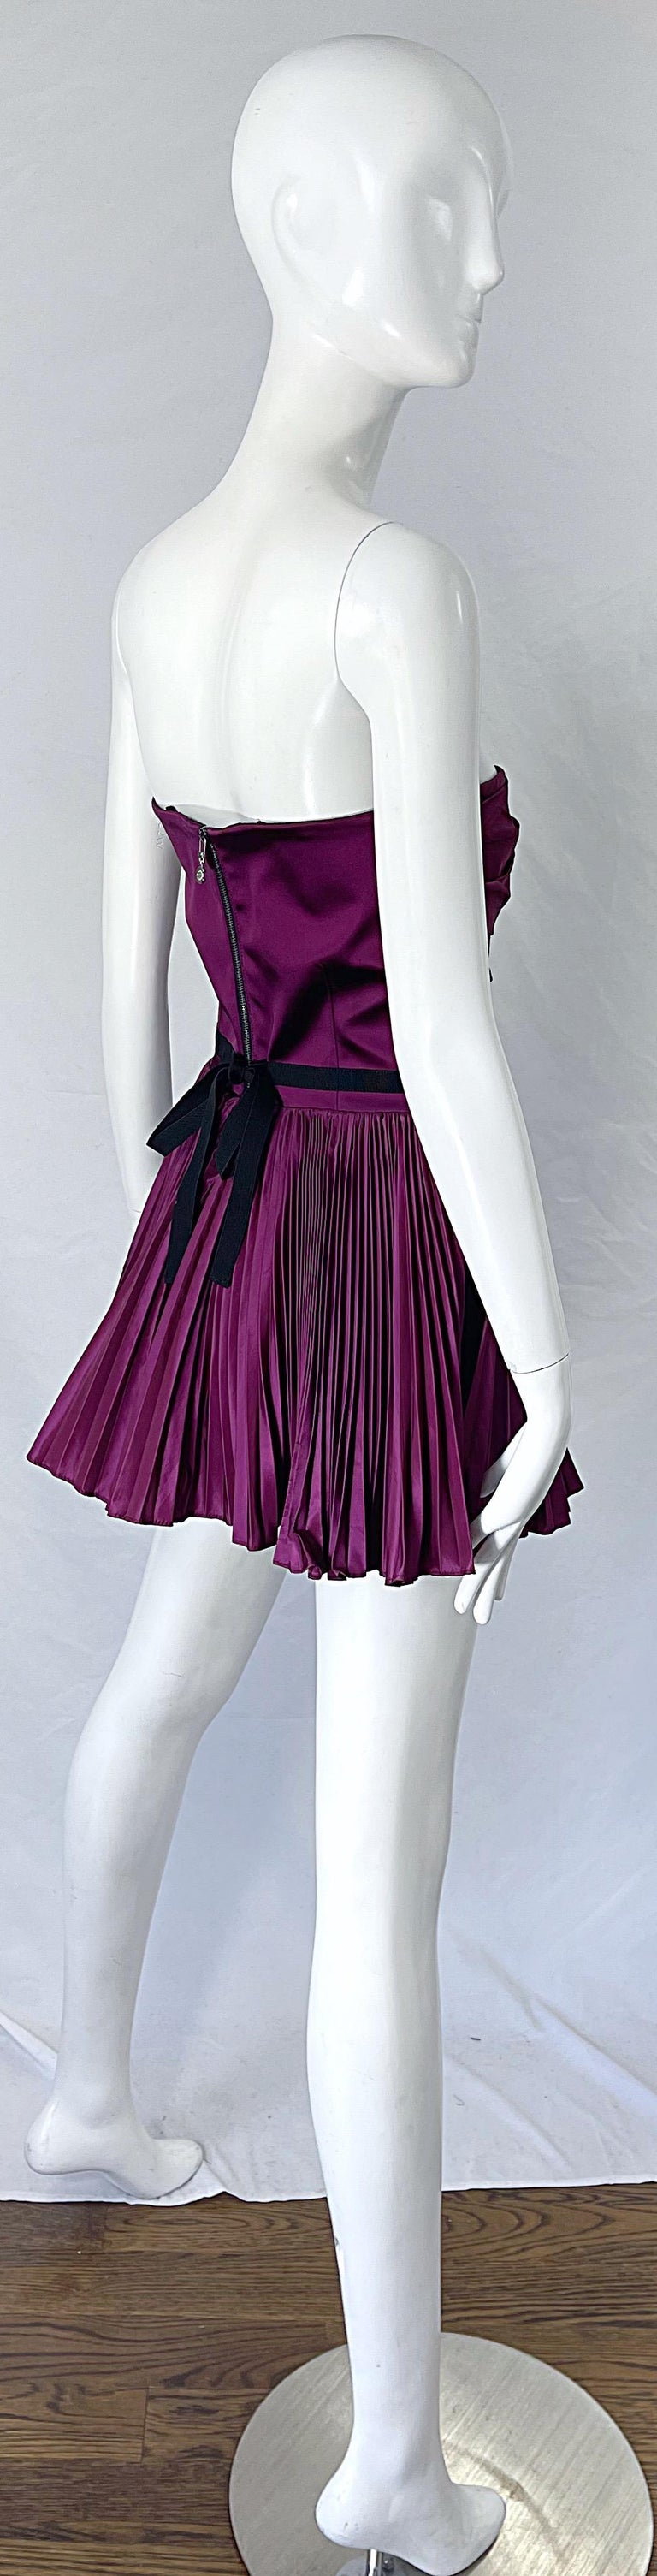 Yves Saint Laurent S/S 2012 Stefano Pilati Purple Silk Taffeta Mini Dress or Top For Sale 7